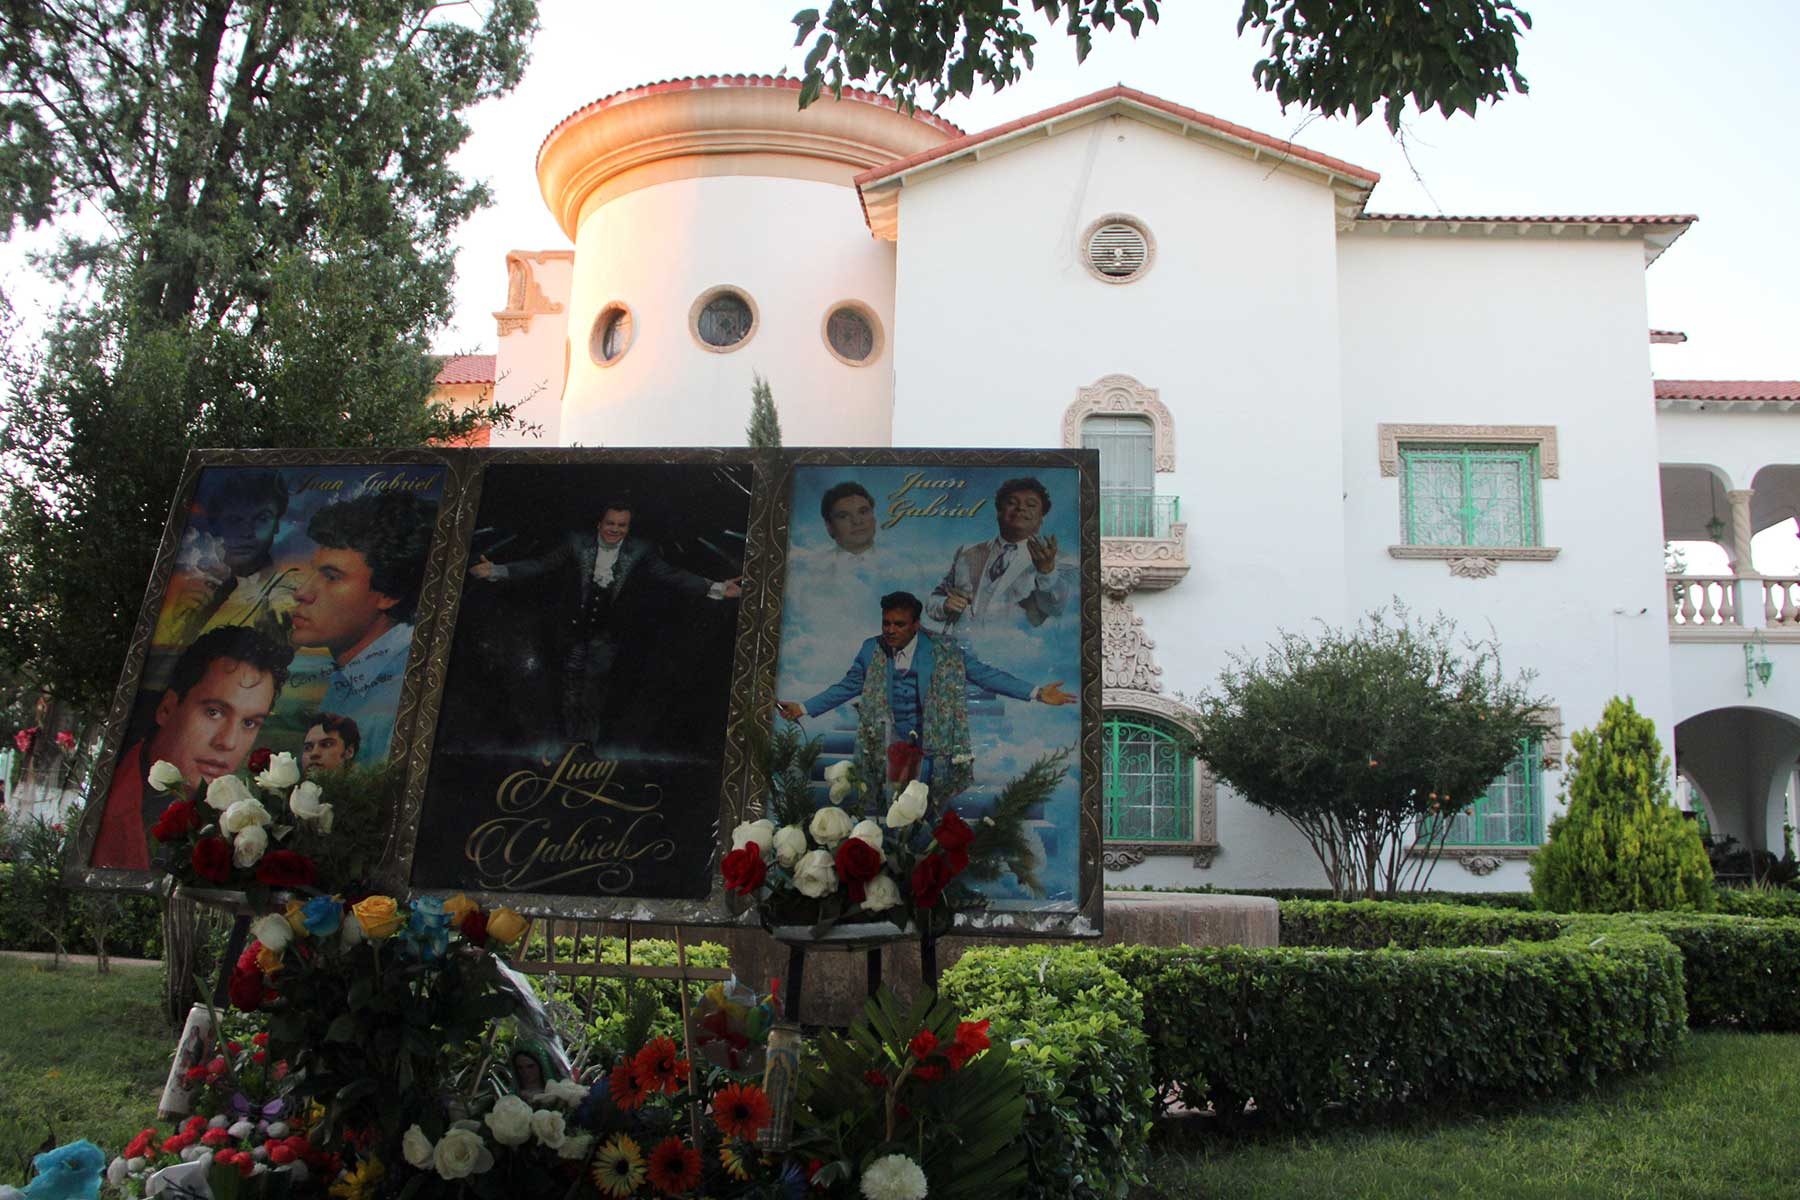 A house of the late Mexican singer and composer Juan Gabriel is seen on the first anniversary of his death, August 27, 2017, in Juarez, Chihuahua, Mexico. / AFP PHOTO / Herika MARTINEZ        (Photo credit should read HERIKA MARTINEZ/AFP via Getty Images)